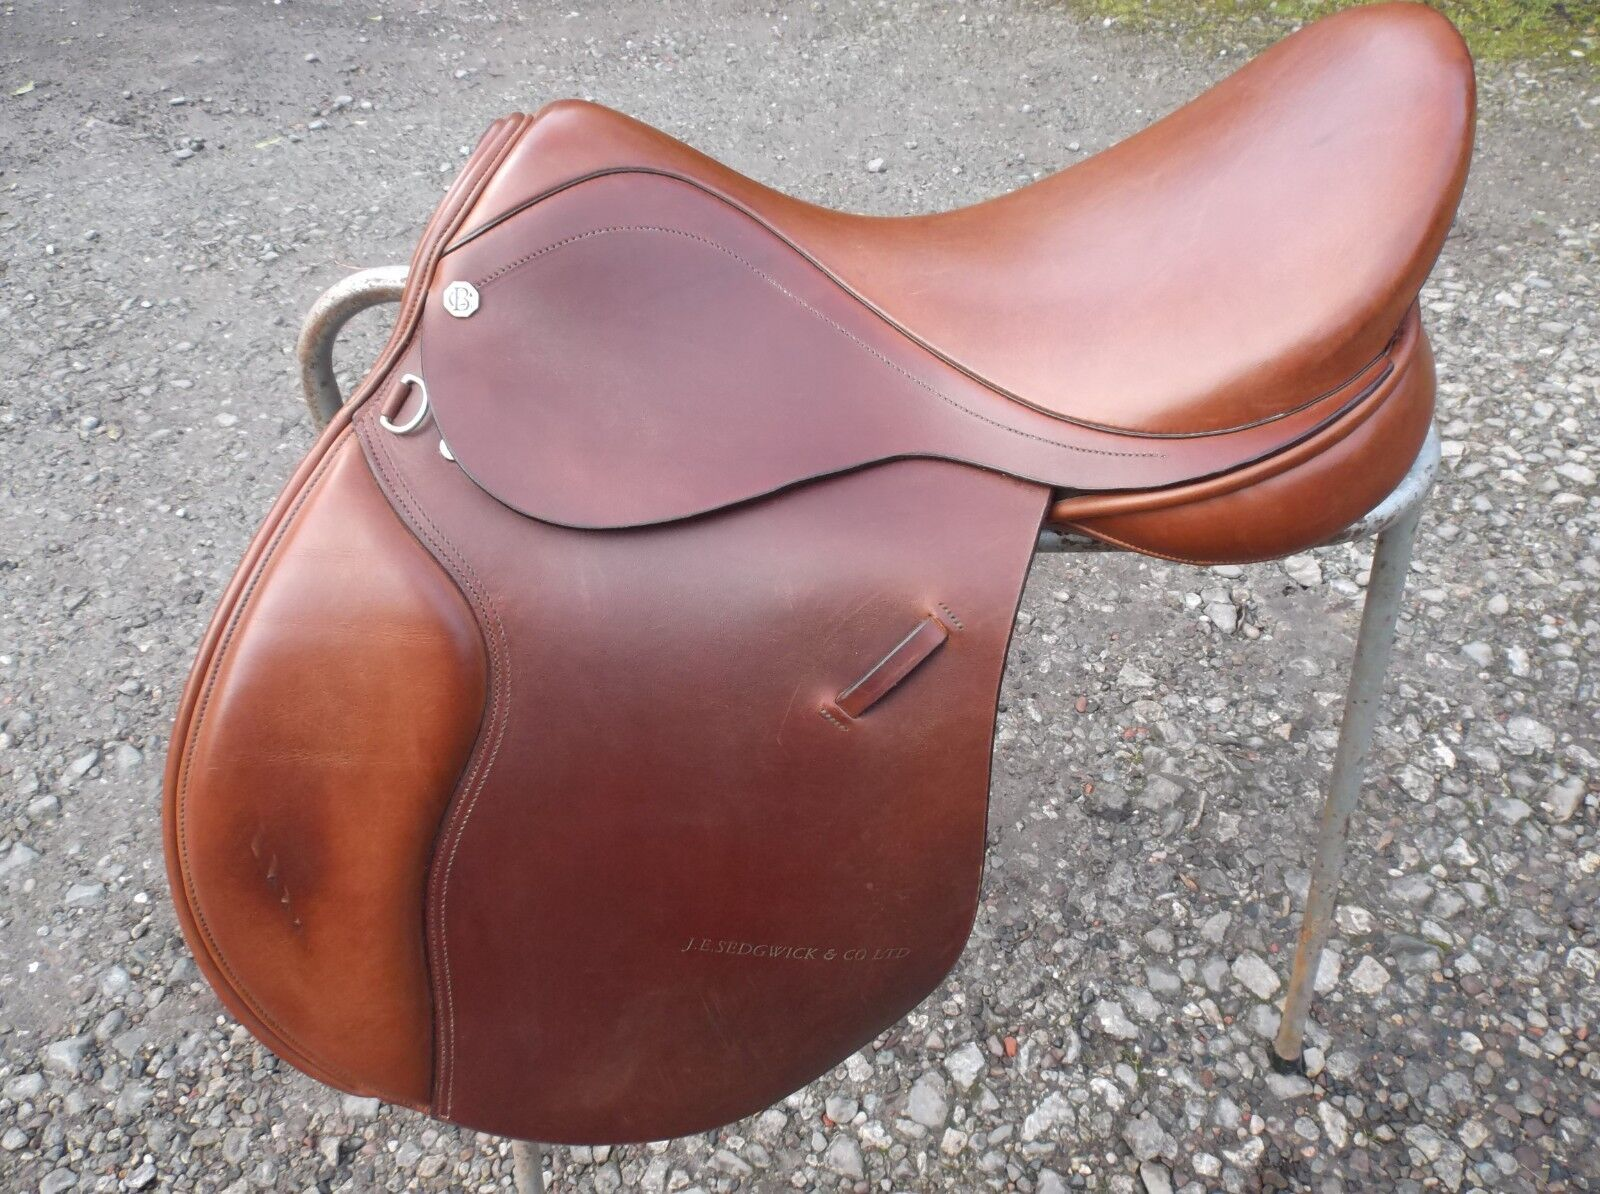 Equestrian GeneraI Purpose Leather Saddle 18 inch Cliff Barnsby FREE DELIVERY.